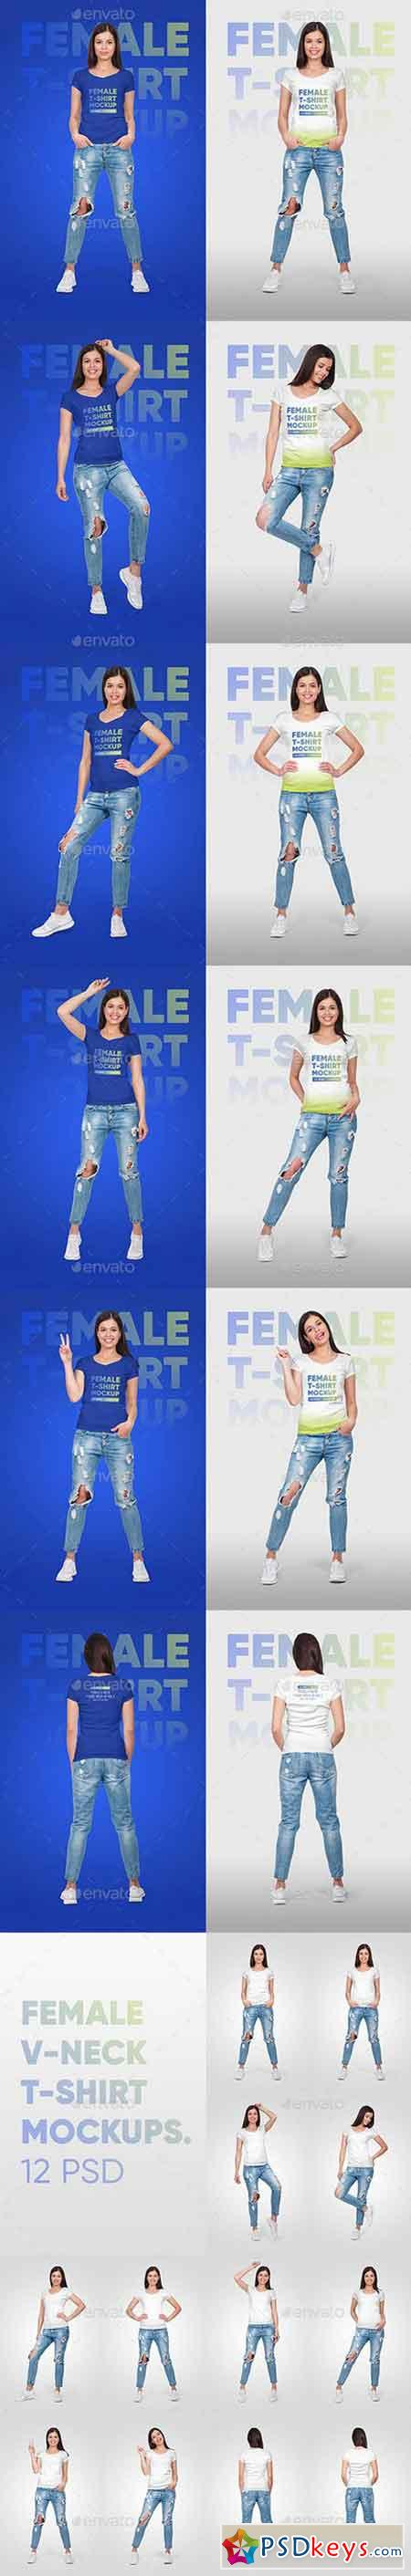 Female Vneck Tshirt Mockup Vol2 22124031